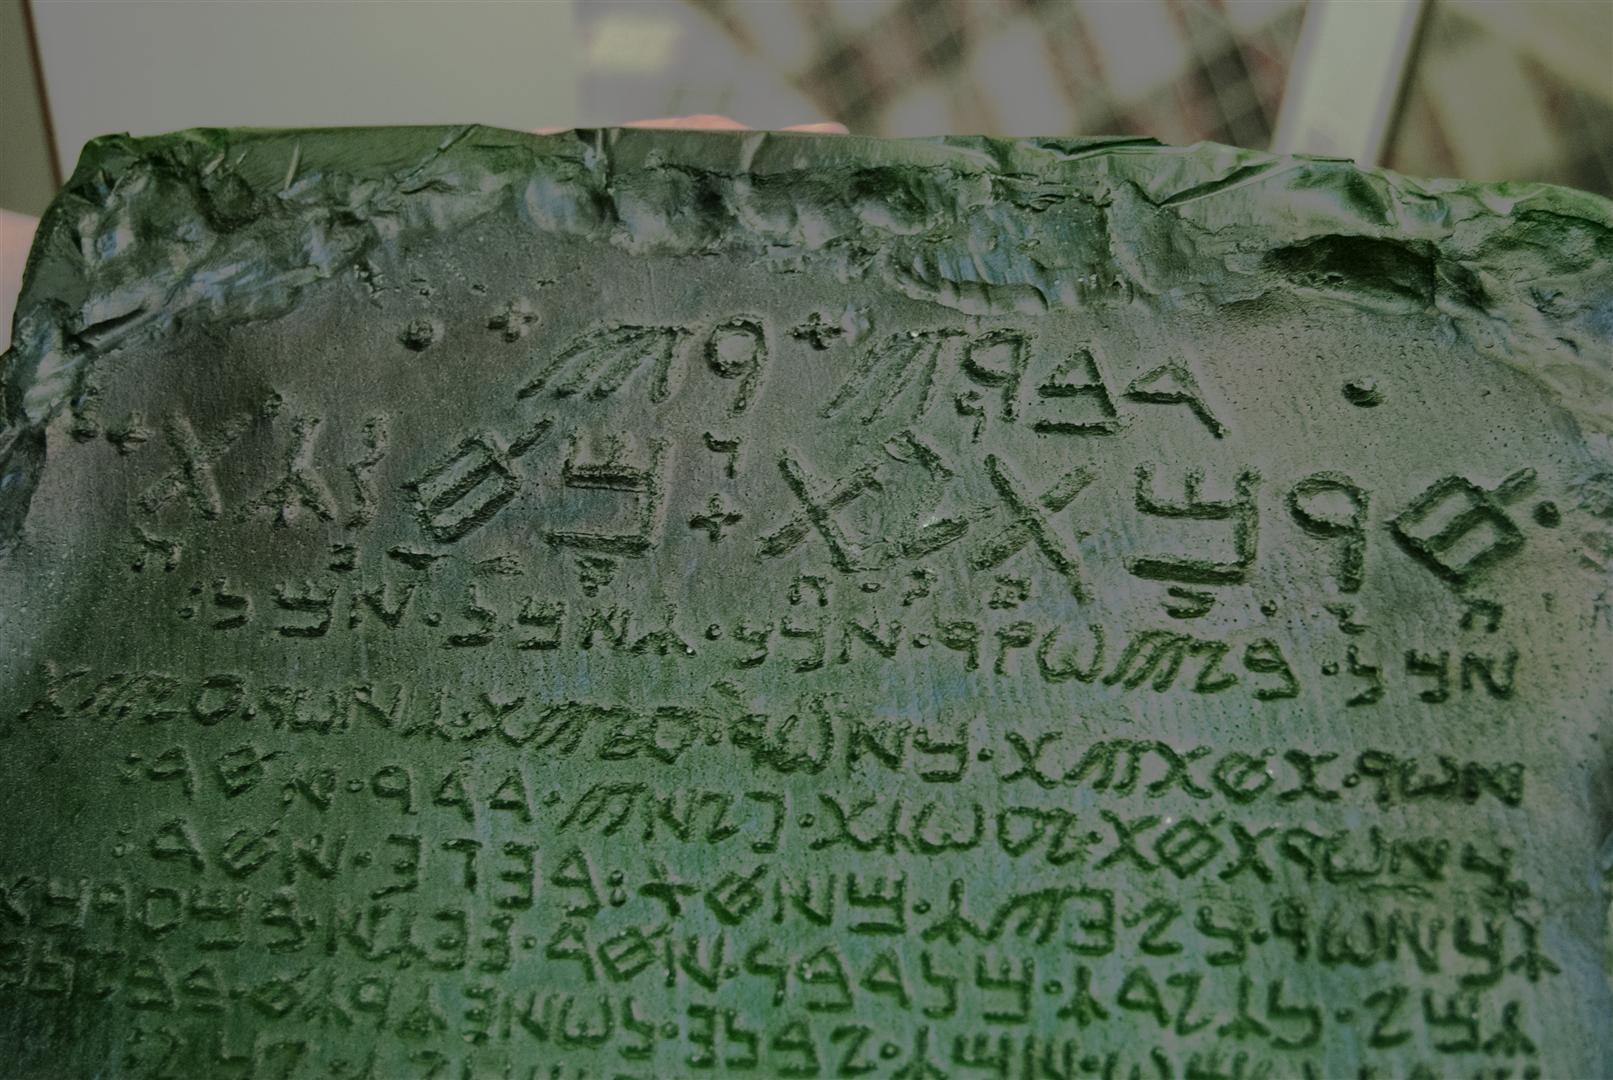 Emerald tablet replica. Réplica tabla esmeralda